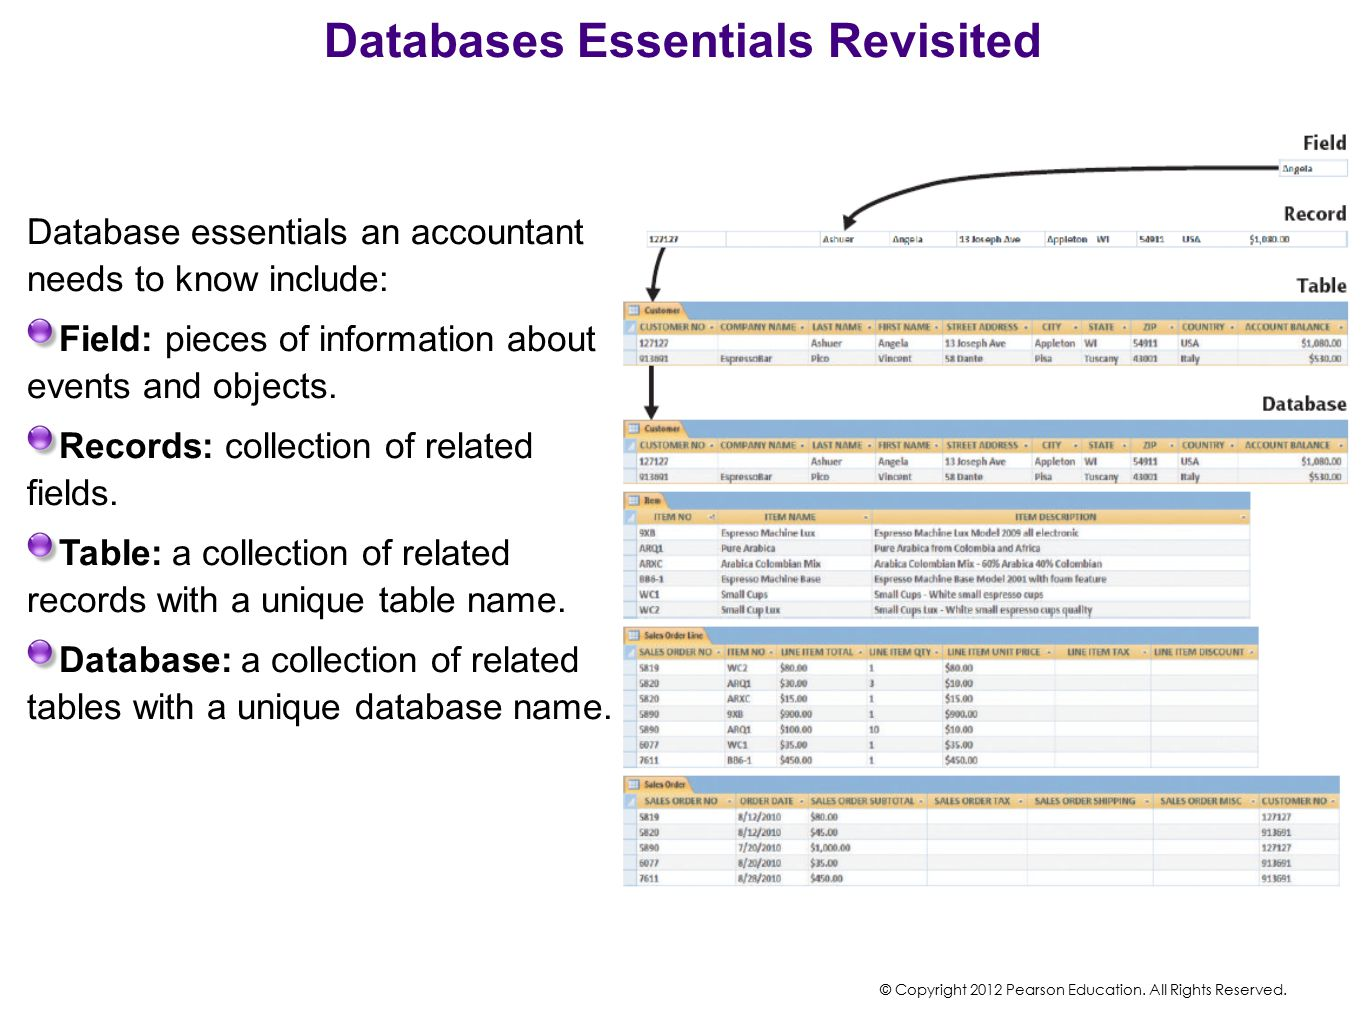 Databases Essentials Revisited